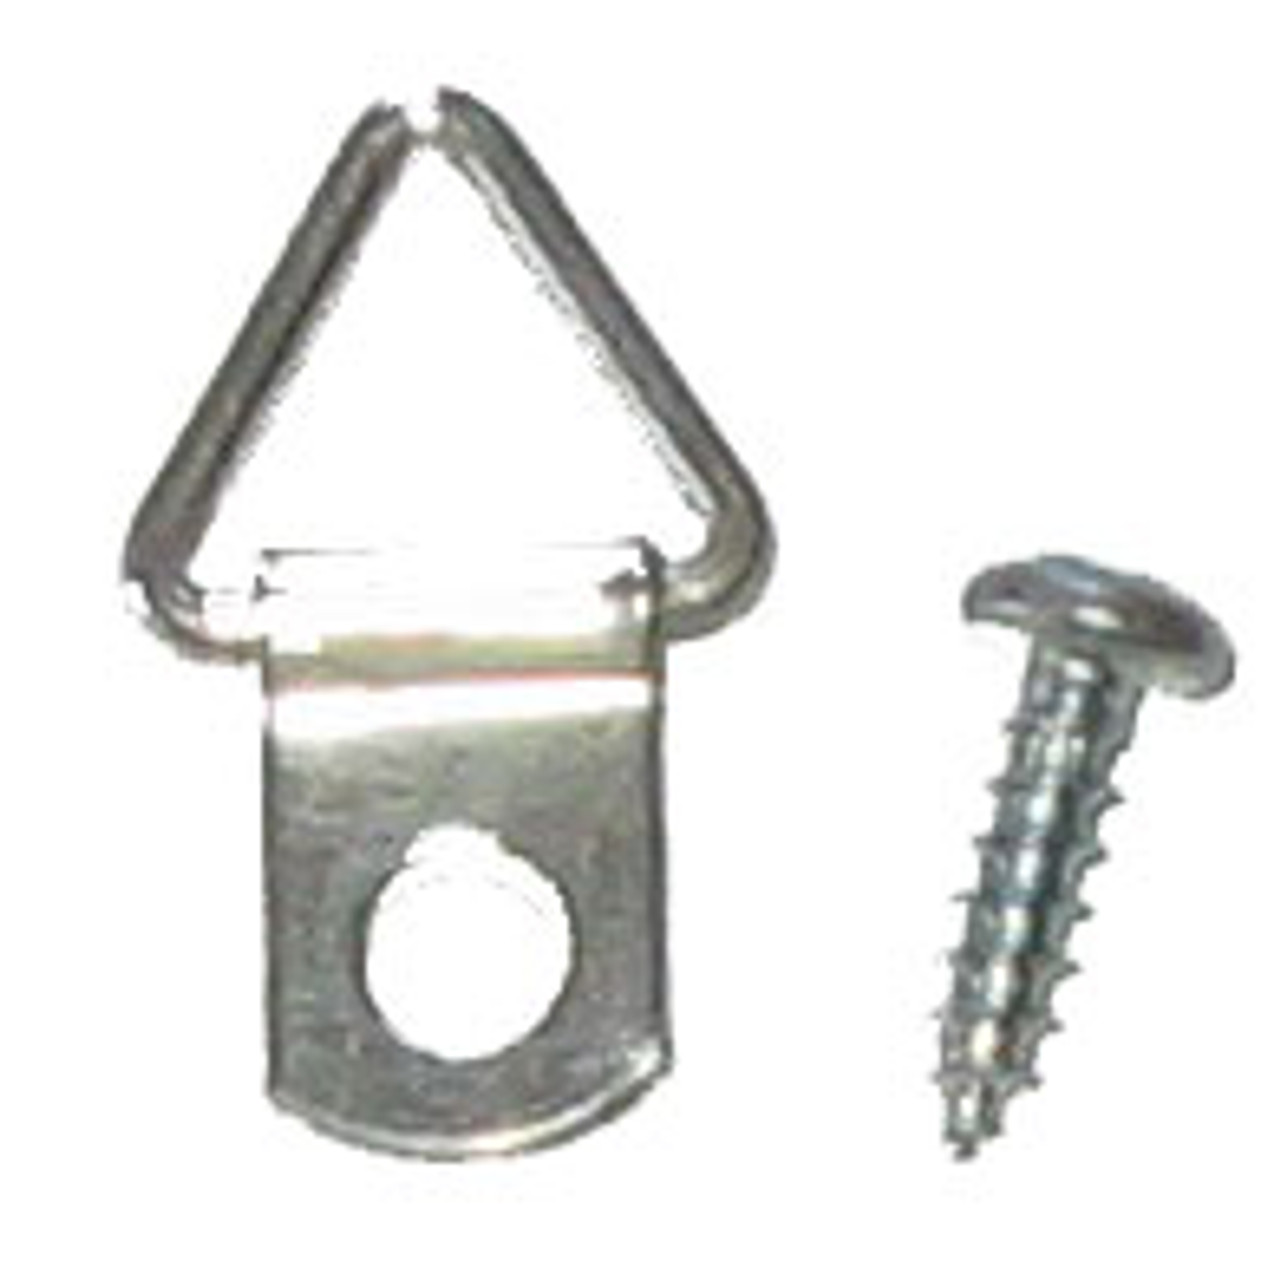 Triangle Hanger with screw